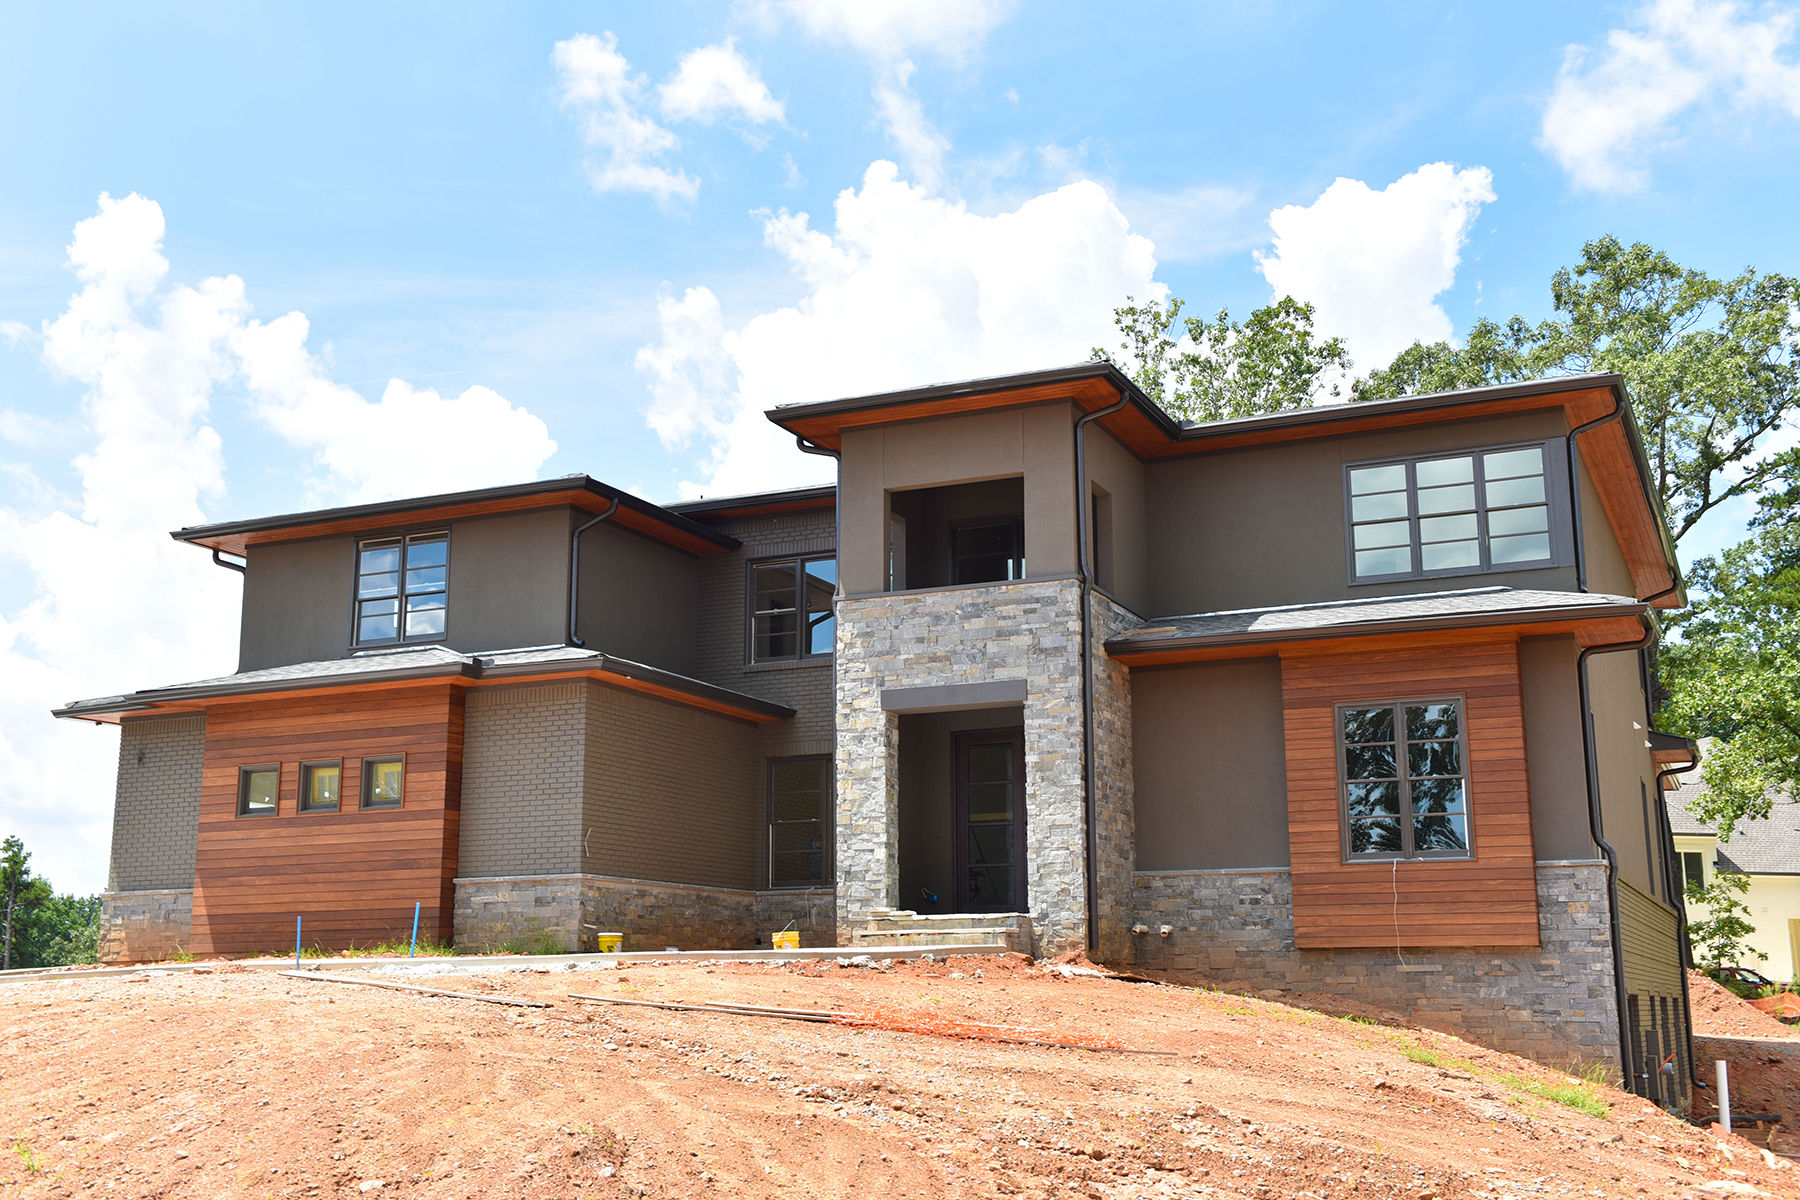 Nhà ở một gia đình vì Bán tại Gated New Construction Community In The Heart Of Sandy Springs 703 Bass Way Sandy Springs, Georgia 30328 Hoa Kỳ